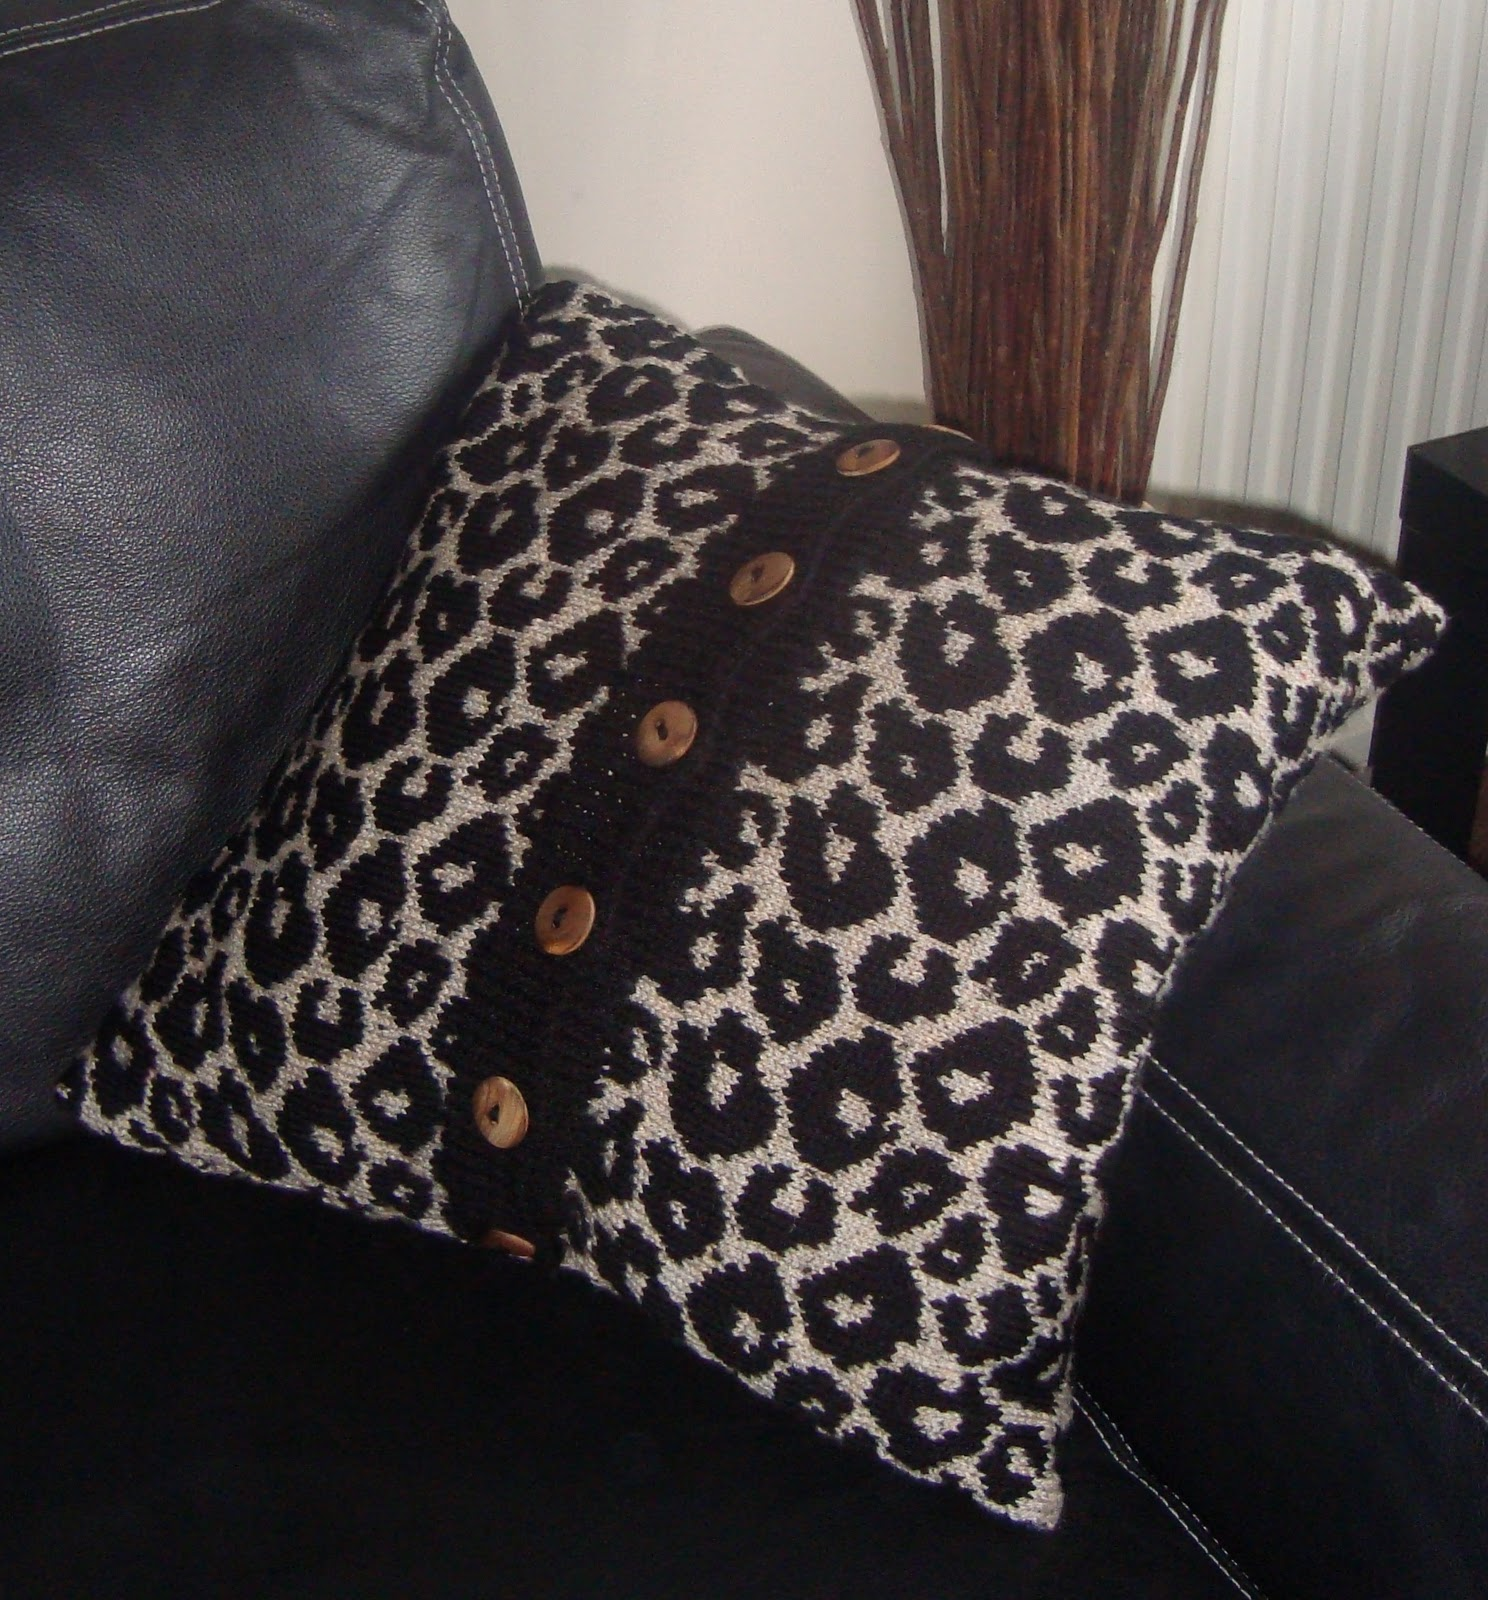 Zebra Print Knitting Pattern : Leopard cushion cover knitting pattern